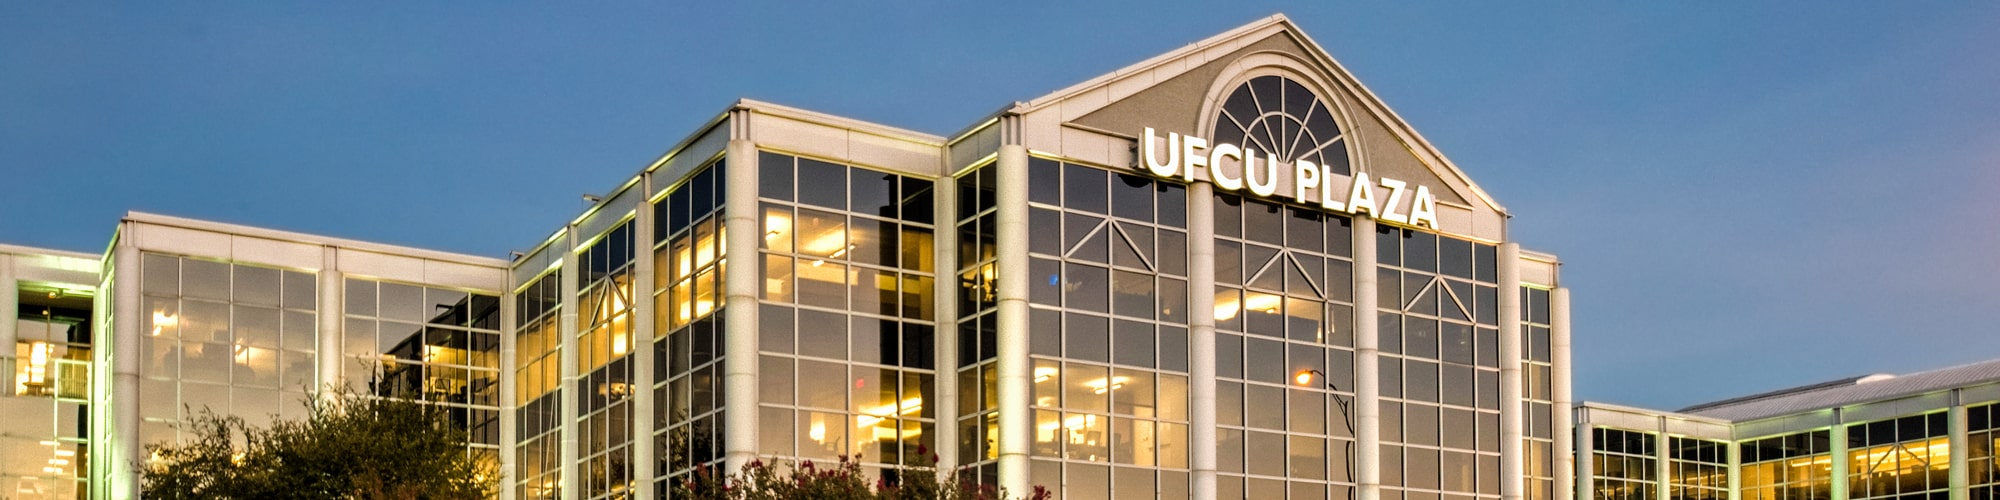 UFCU Plaza Exterior | 8303 N Mopac Expressway in Austin, Texas | AQUILA Commercial